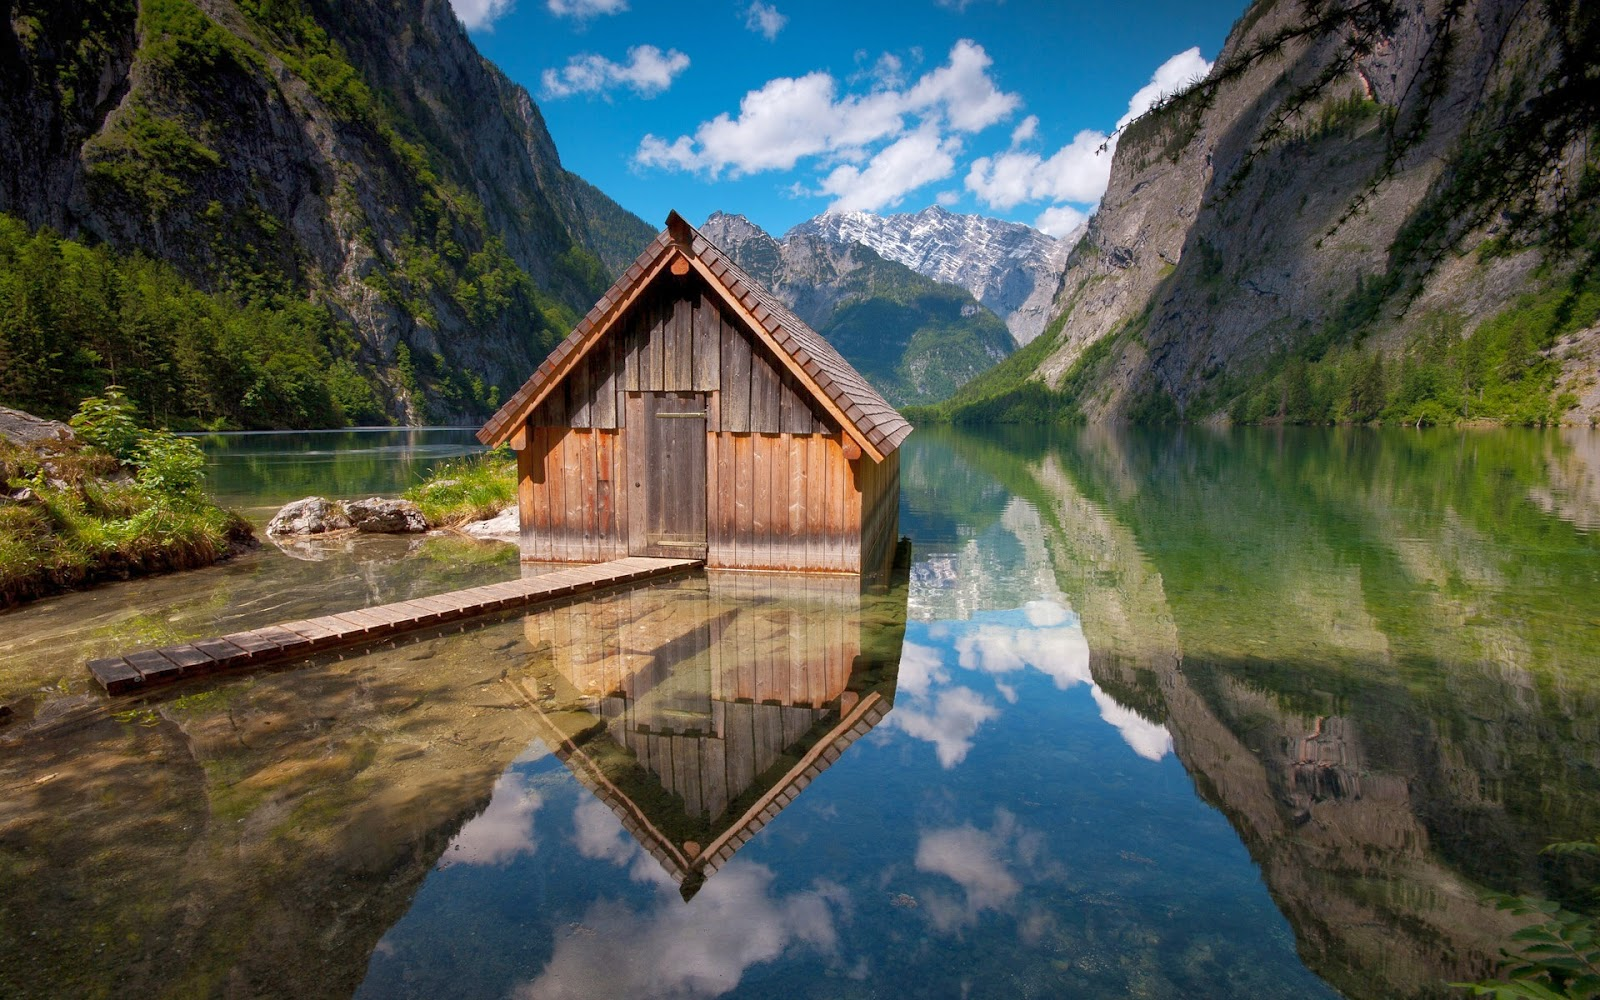 wood_house_mountain-lake-beautiful-nature-images-wallpapers